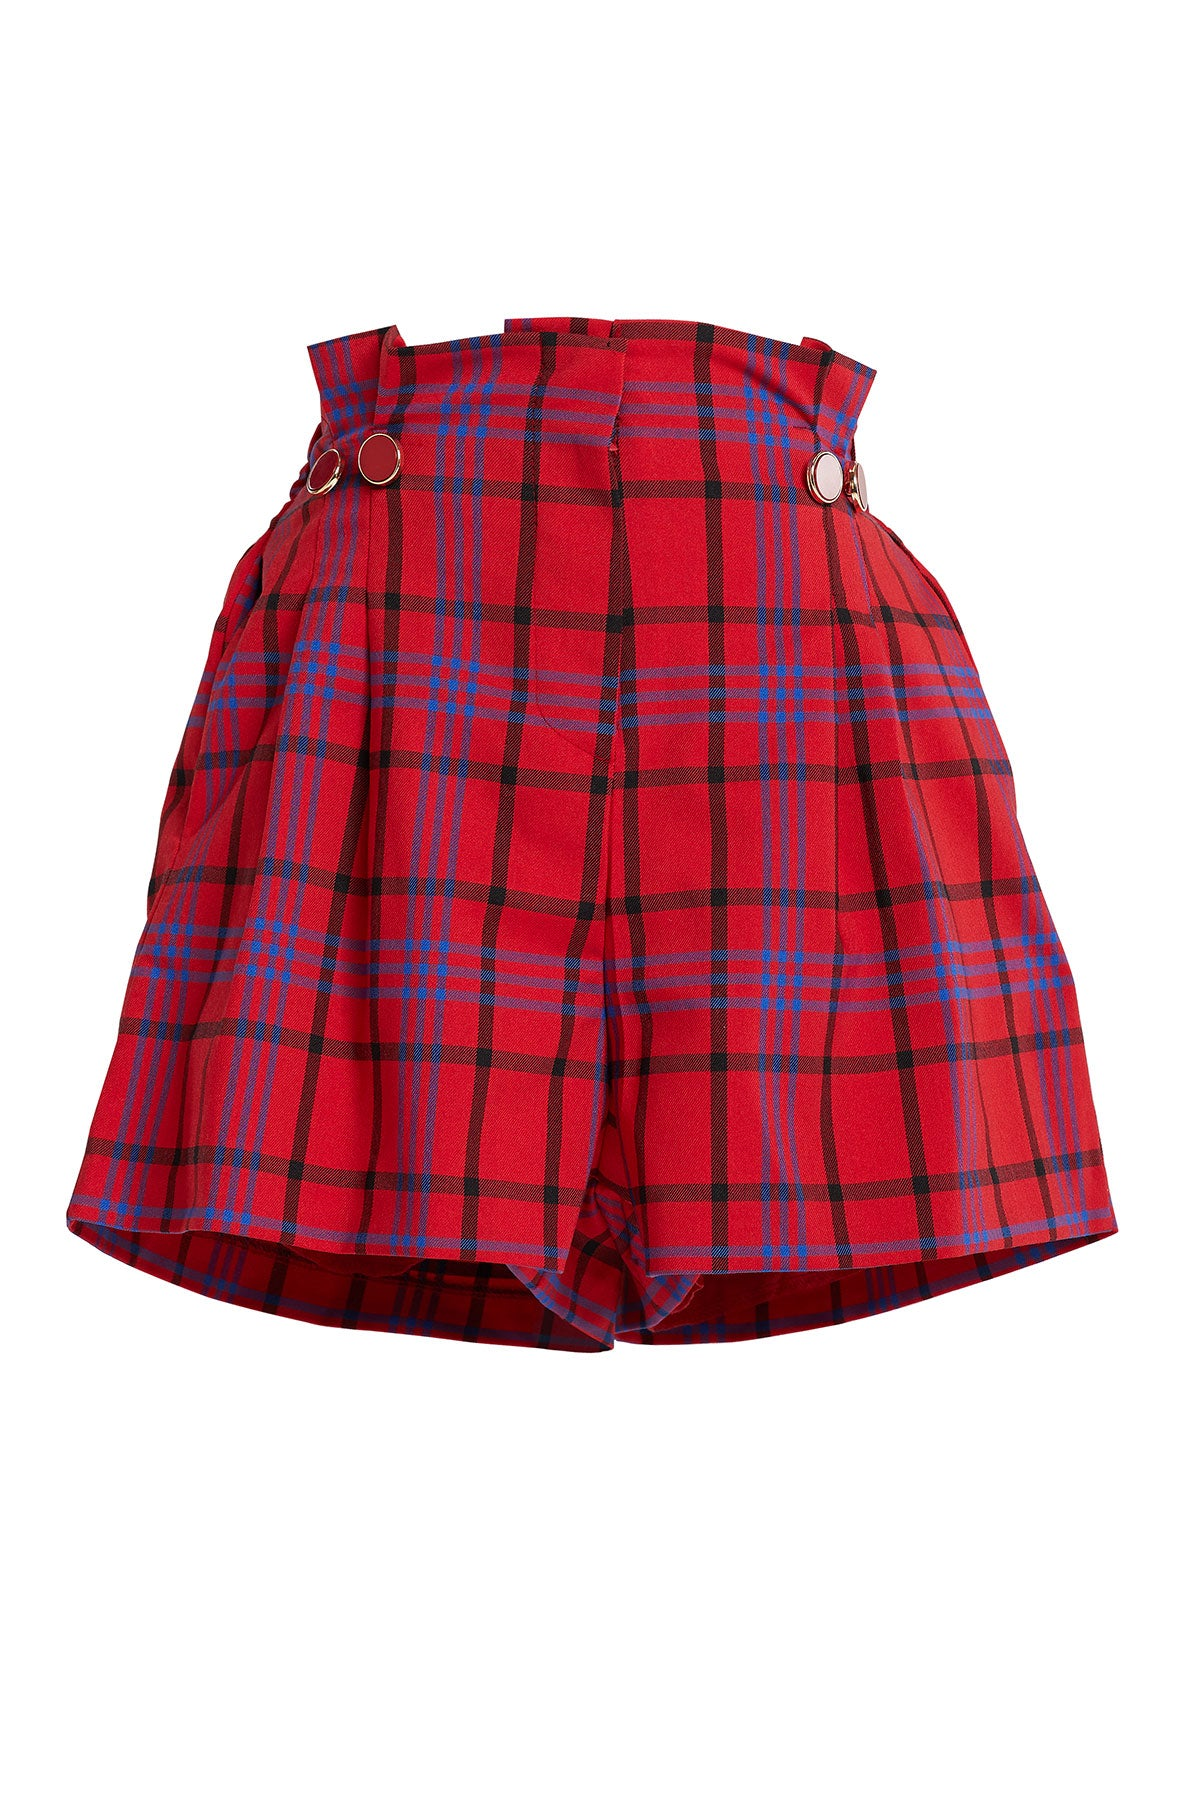 Nava Plaid Flare Shorts-2 Colors (Pre-Order)